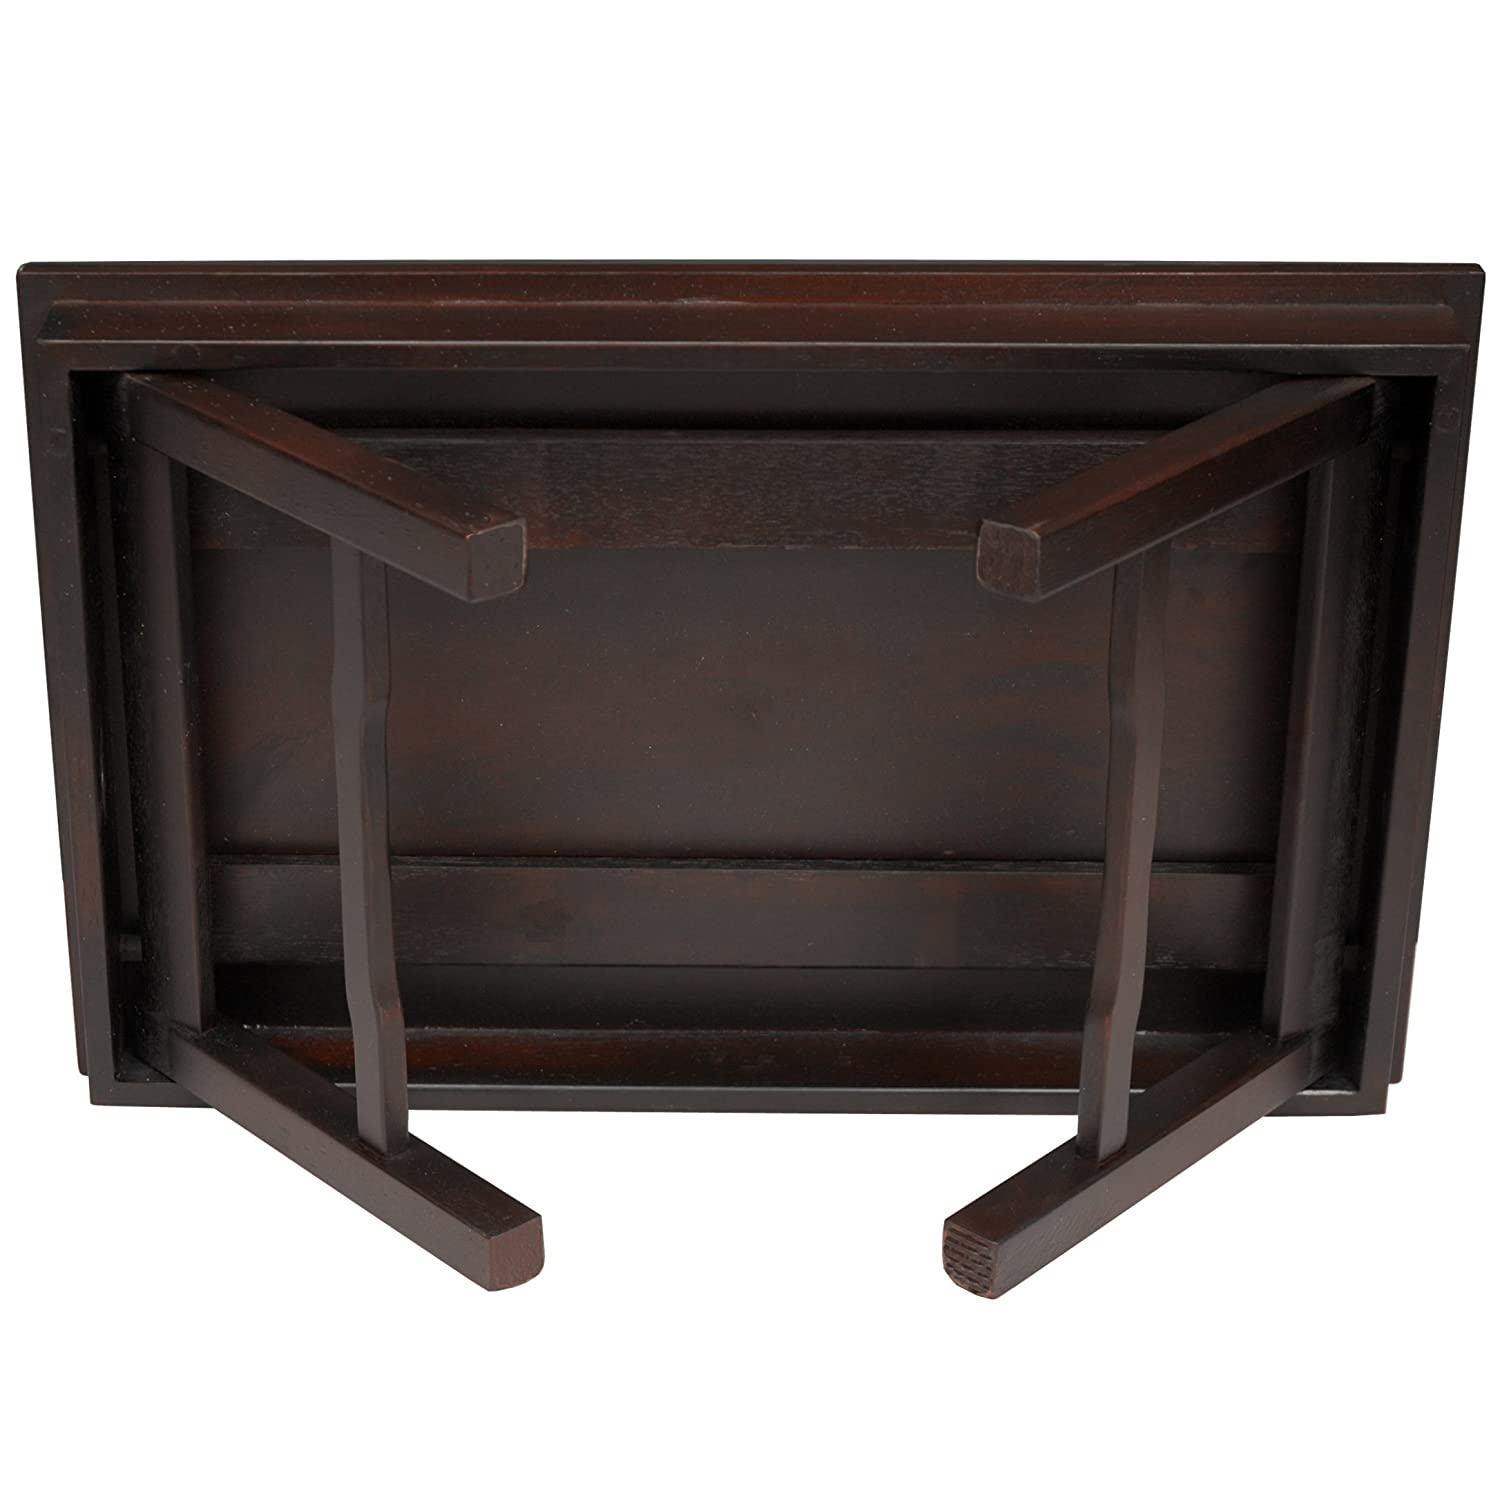 Captivating Amazon.com: Oriental Furniture Rosewood Korean Tea Table: Kitchen U0026 Dining